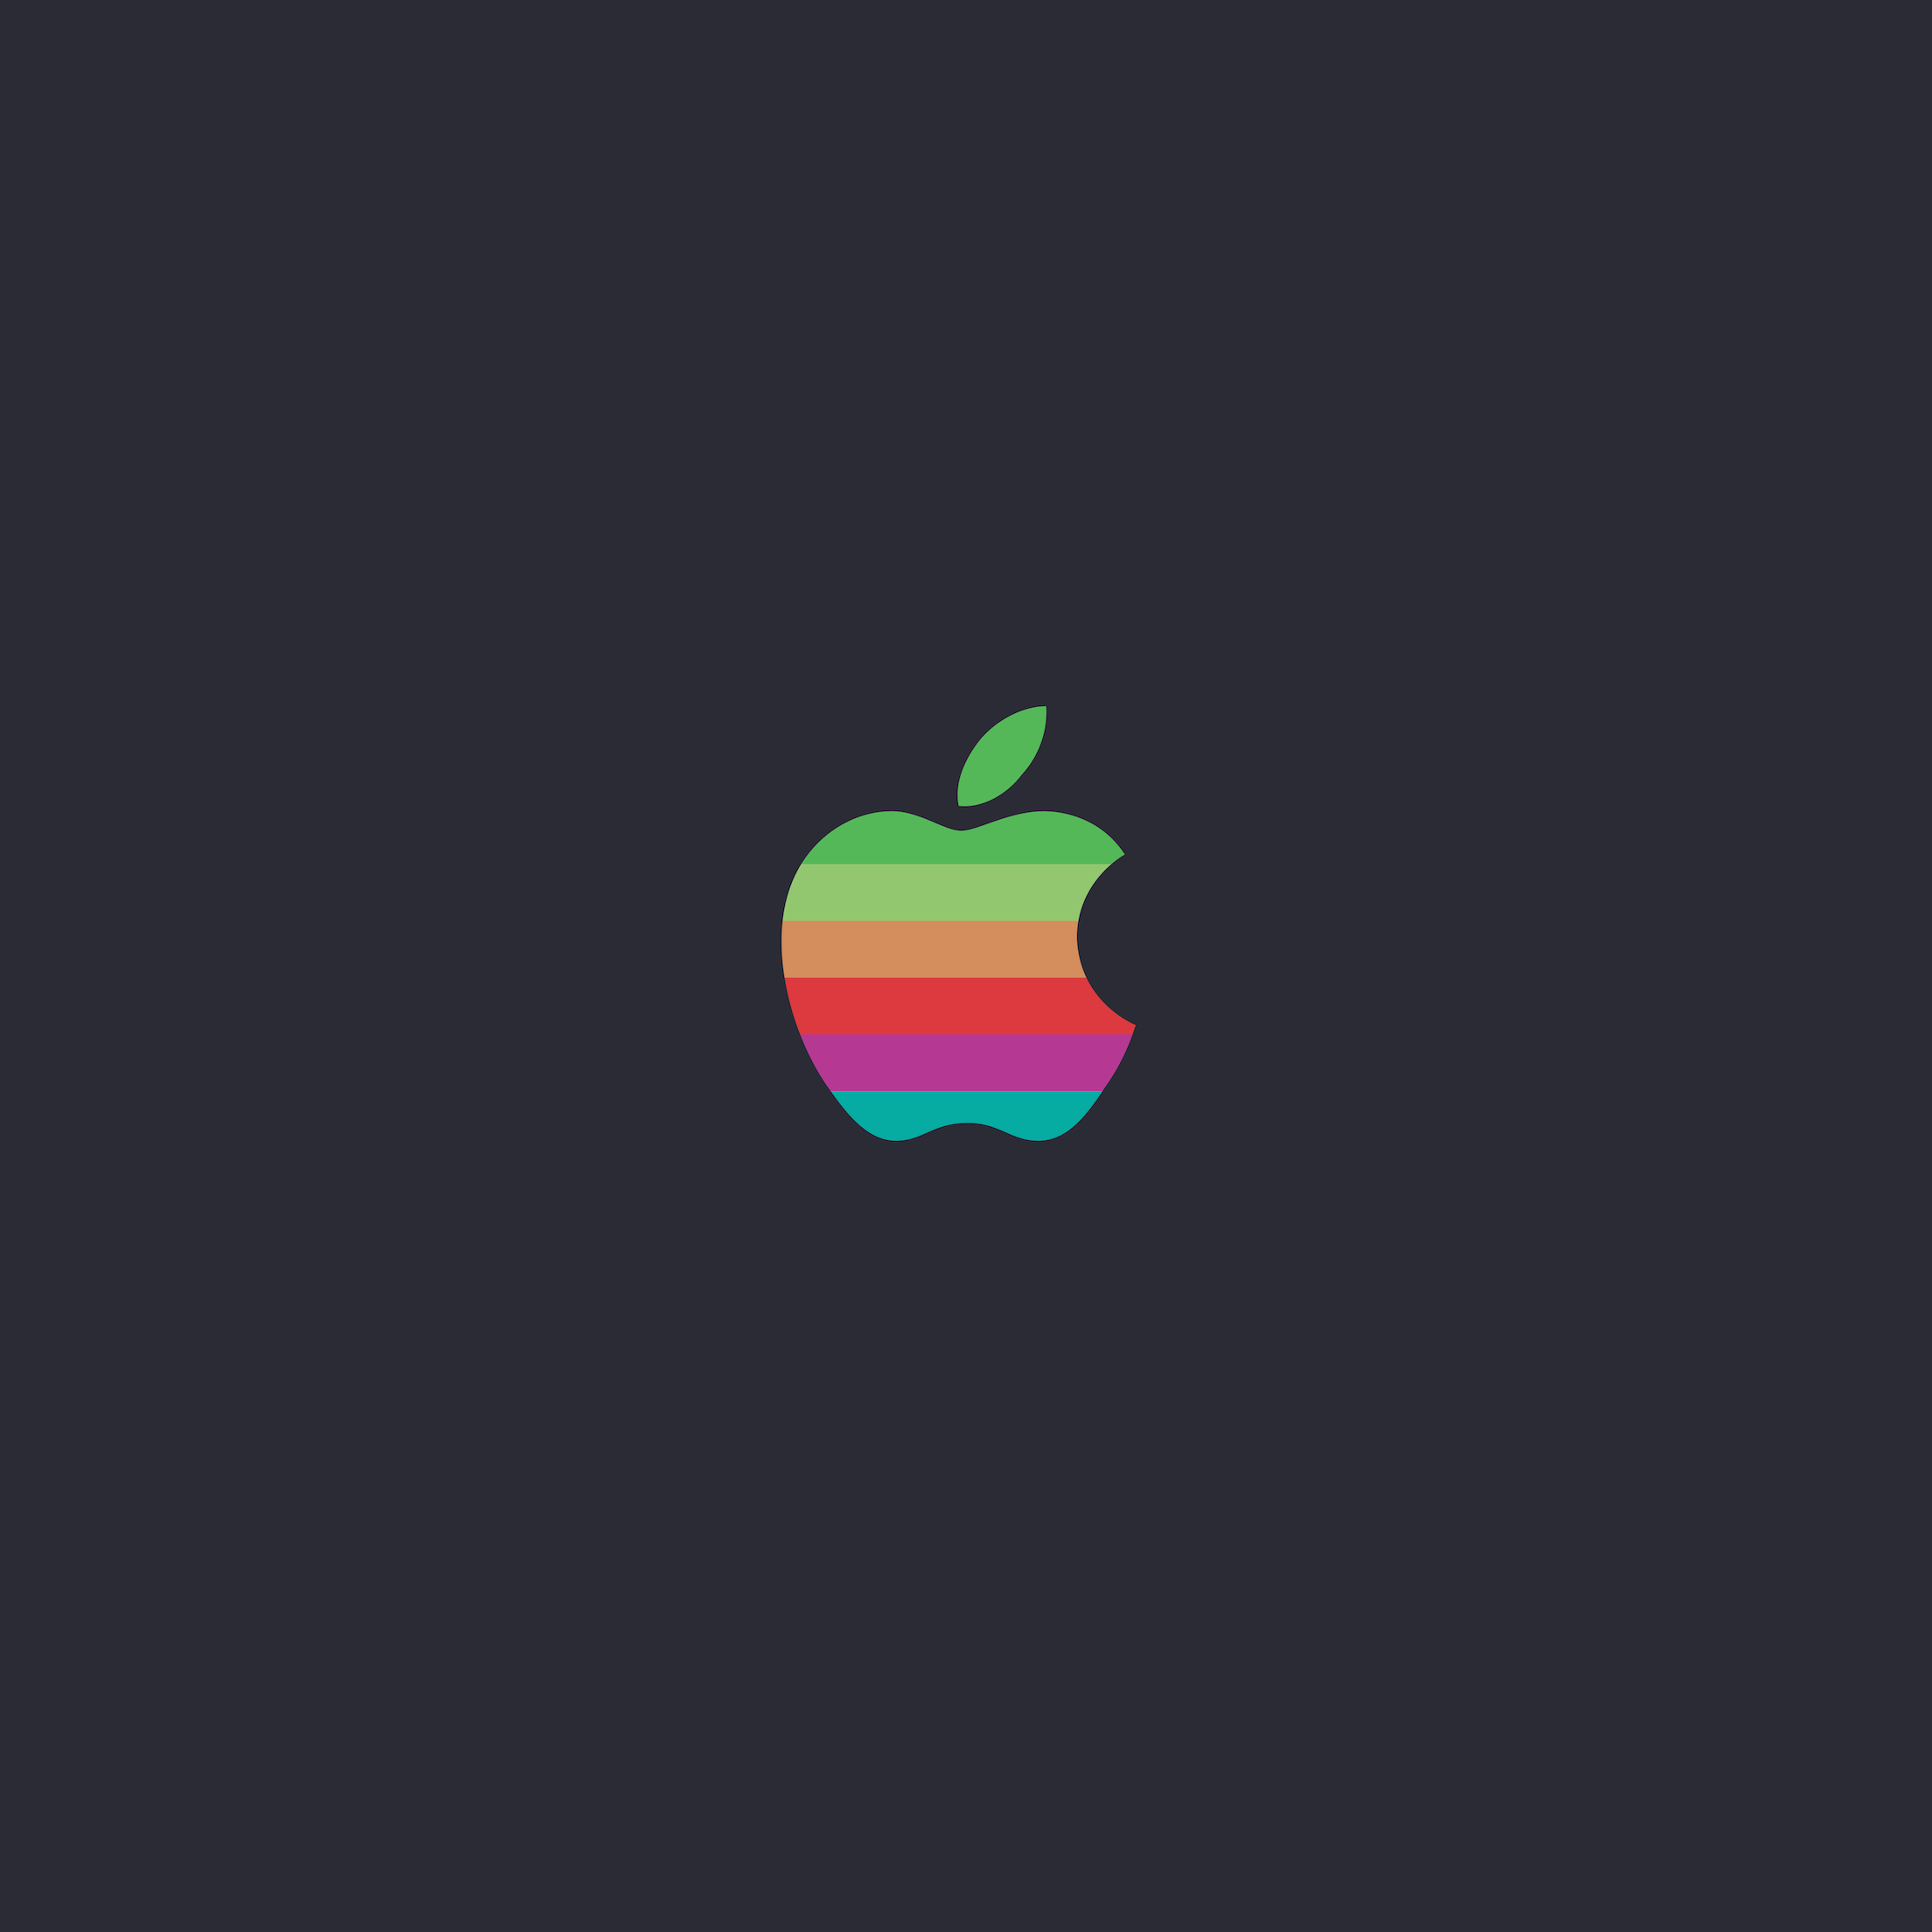 4k Apple Logo Wallpaper Clipart Vector Design